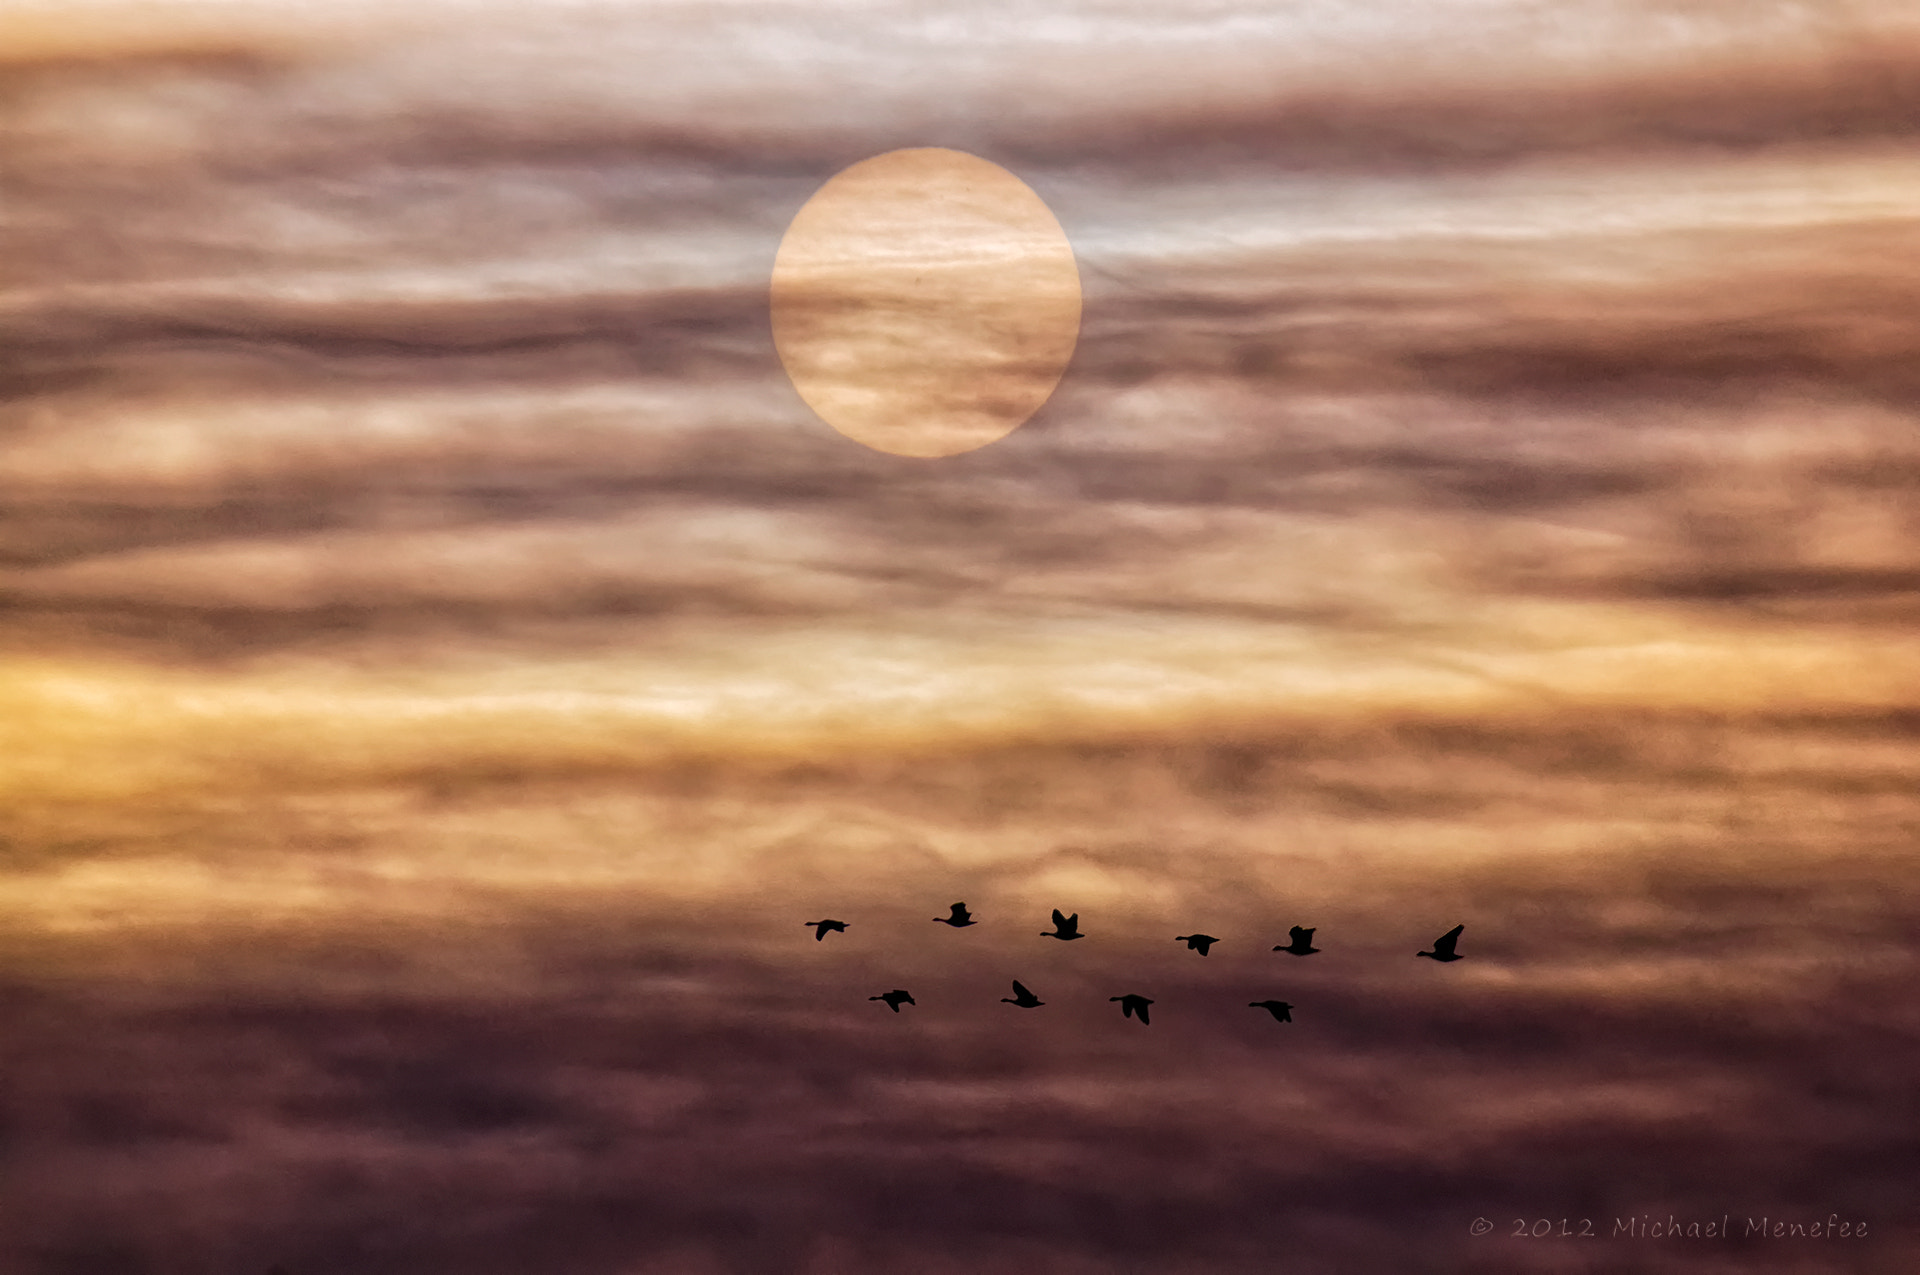 Photograph Solar Migration by Michael Menefee on 500px